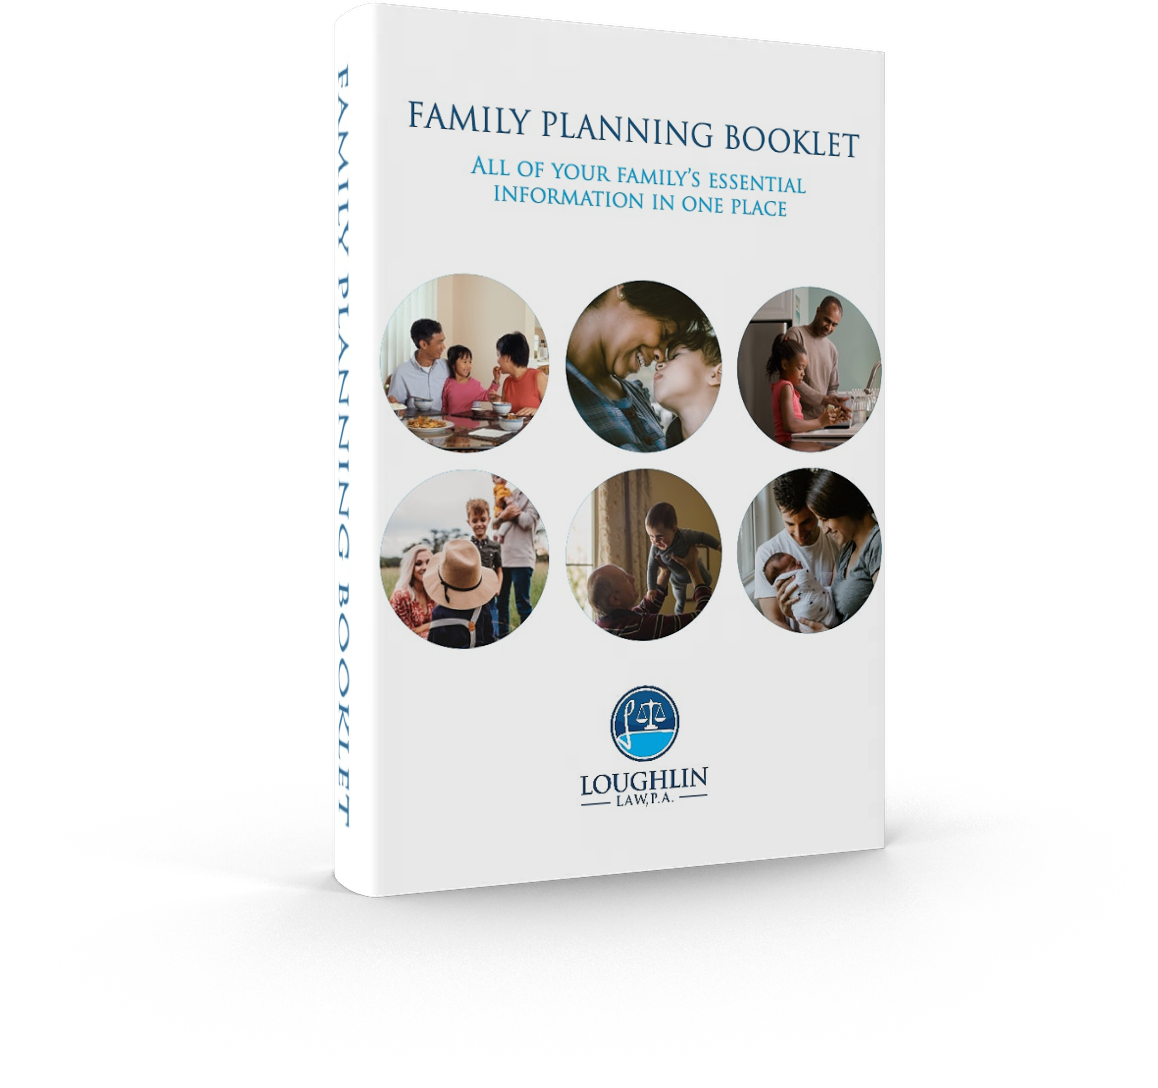 Family Planning Booklet - Free Download - Loughlin Law P.A.